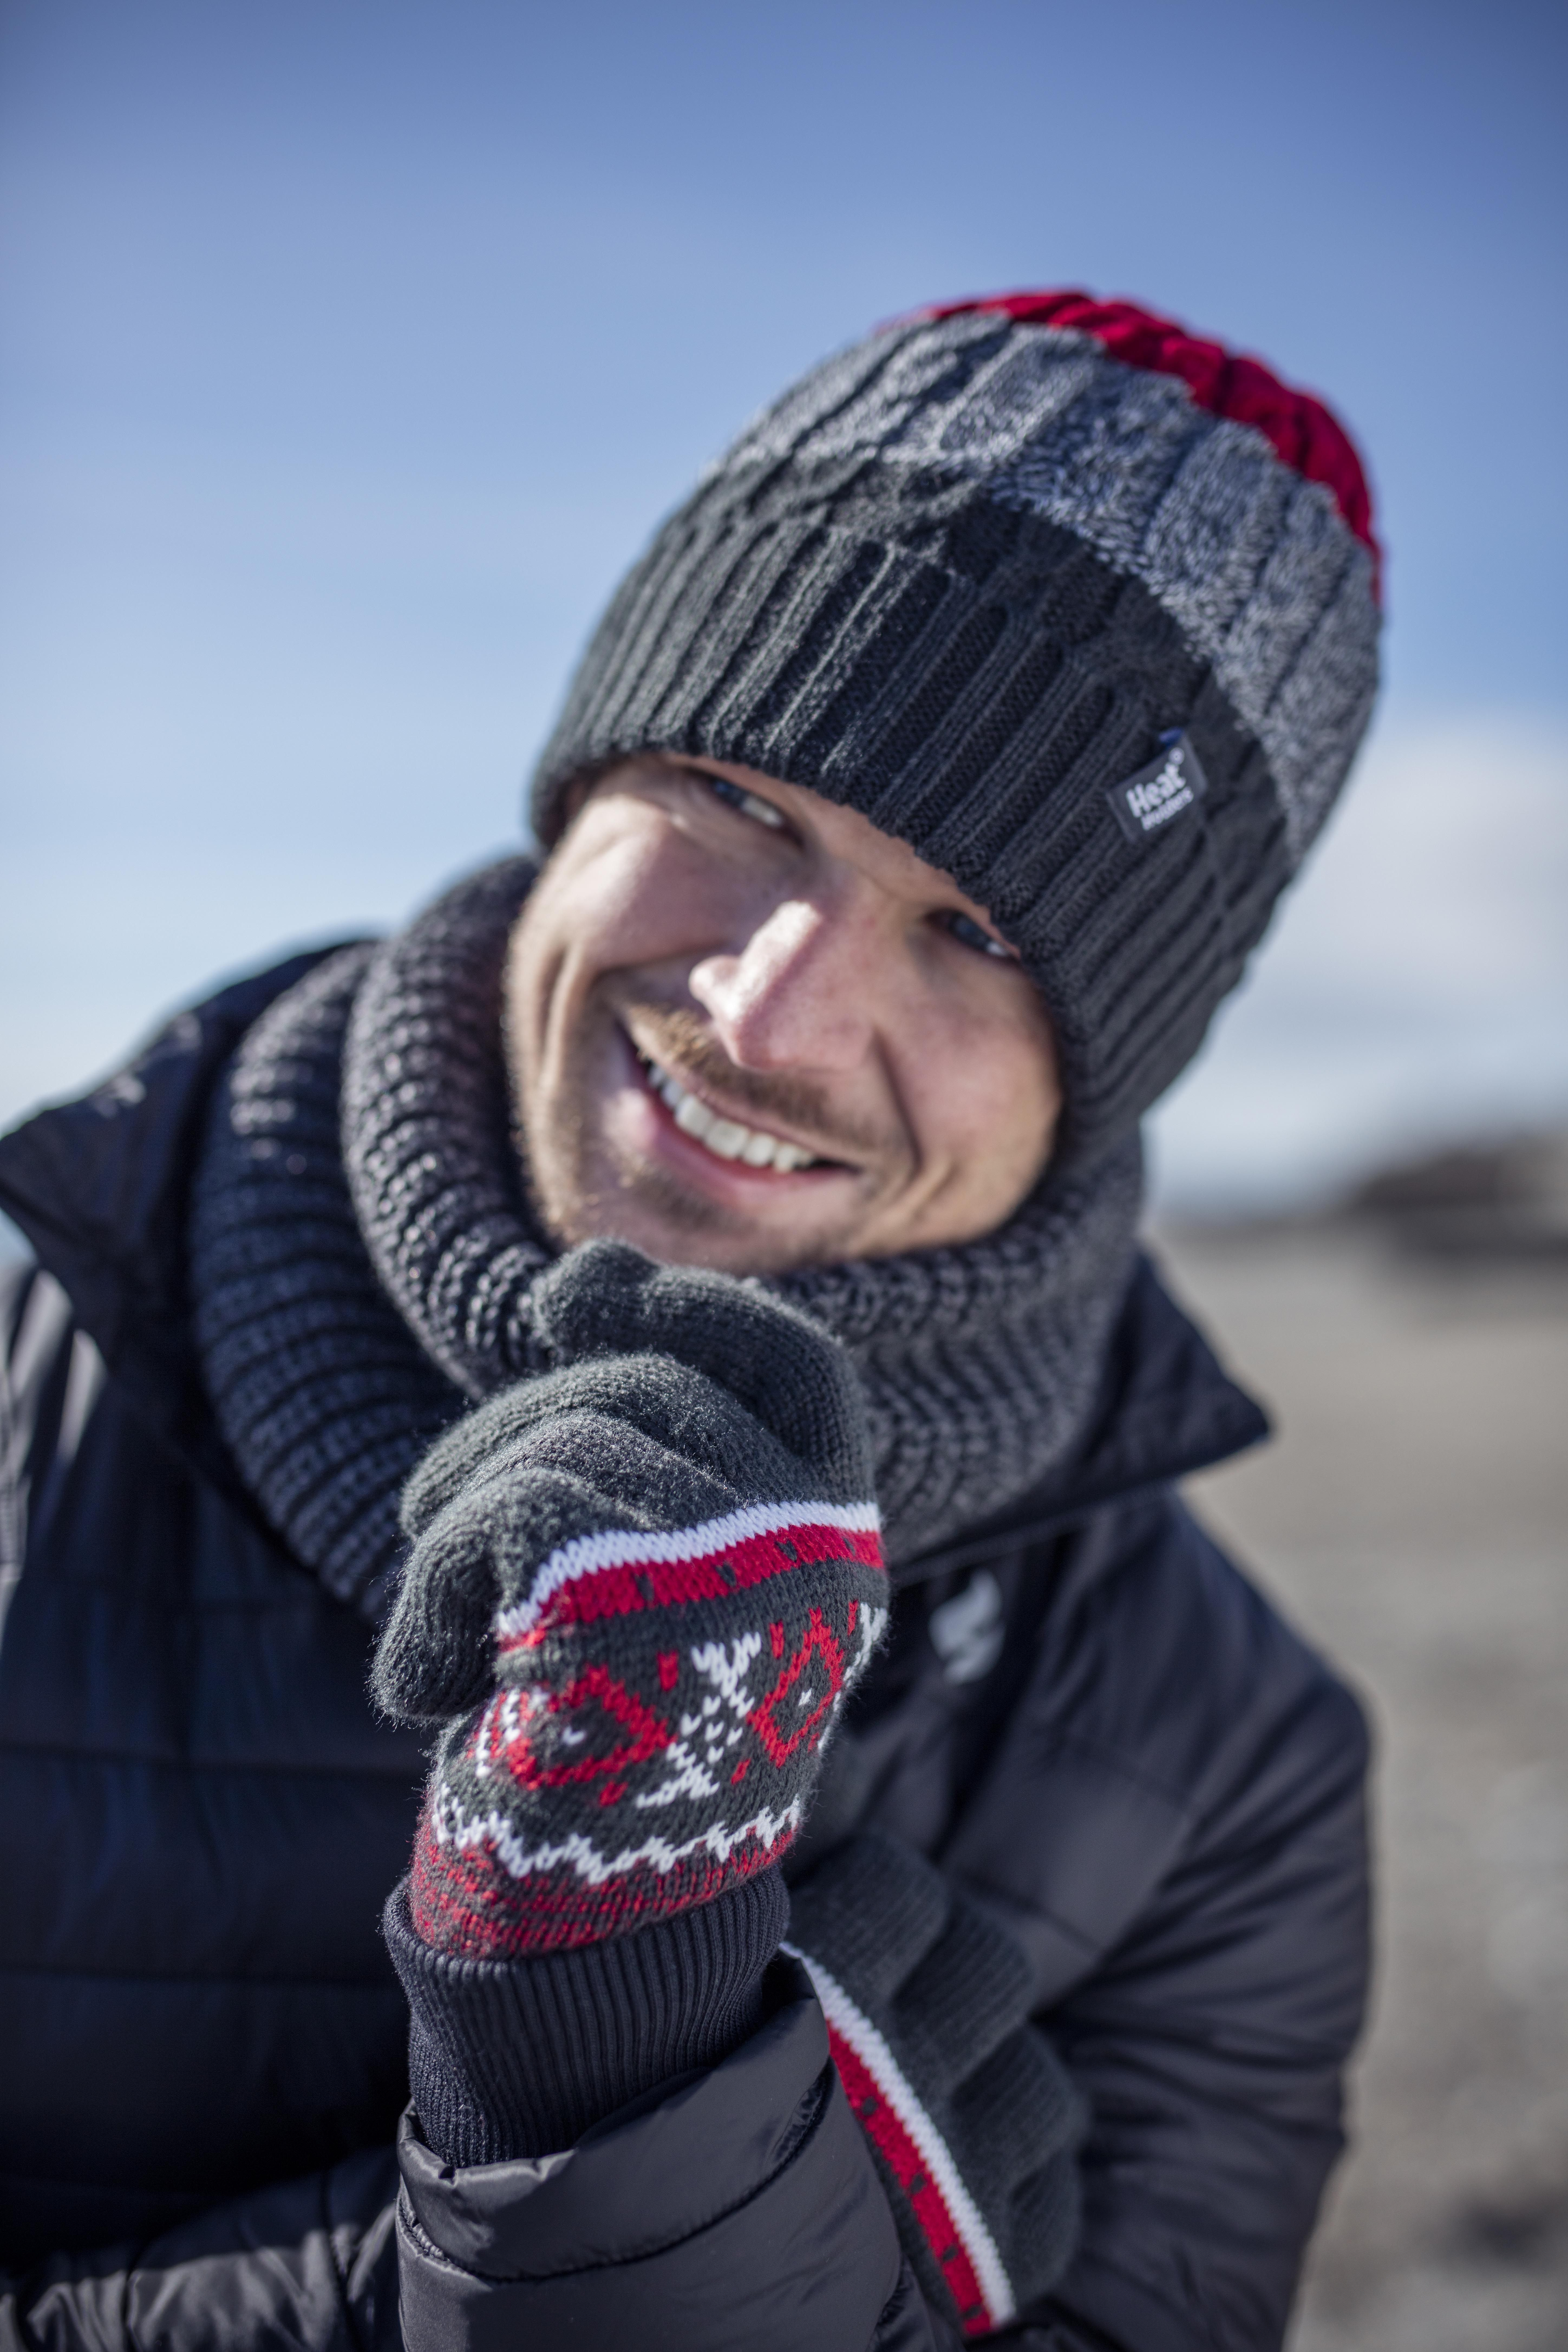 383848969da Heat Holders Thermal Hats are created with our high performance thermal  yarn and HEATWEAVER insulation lining to maximise the amount of warm air  held close ...